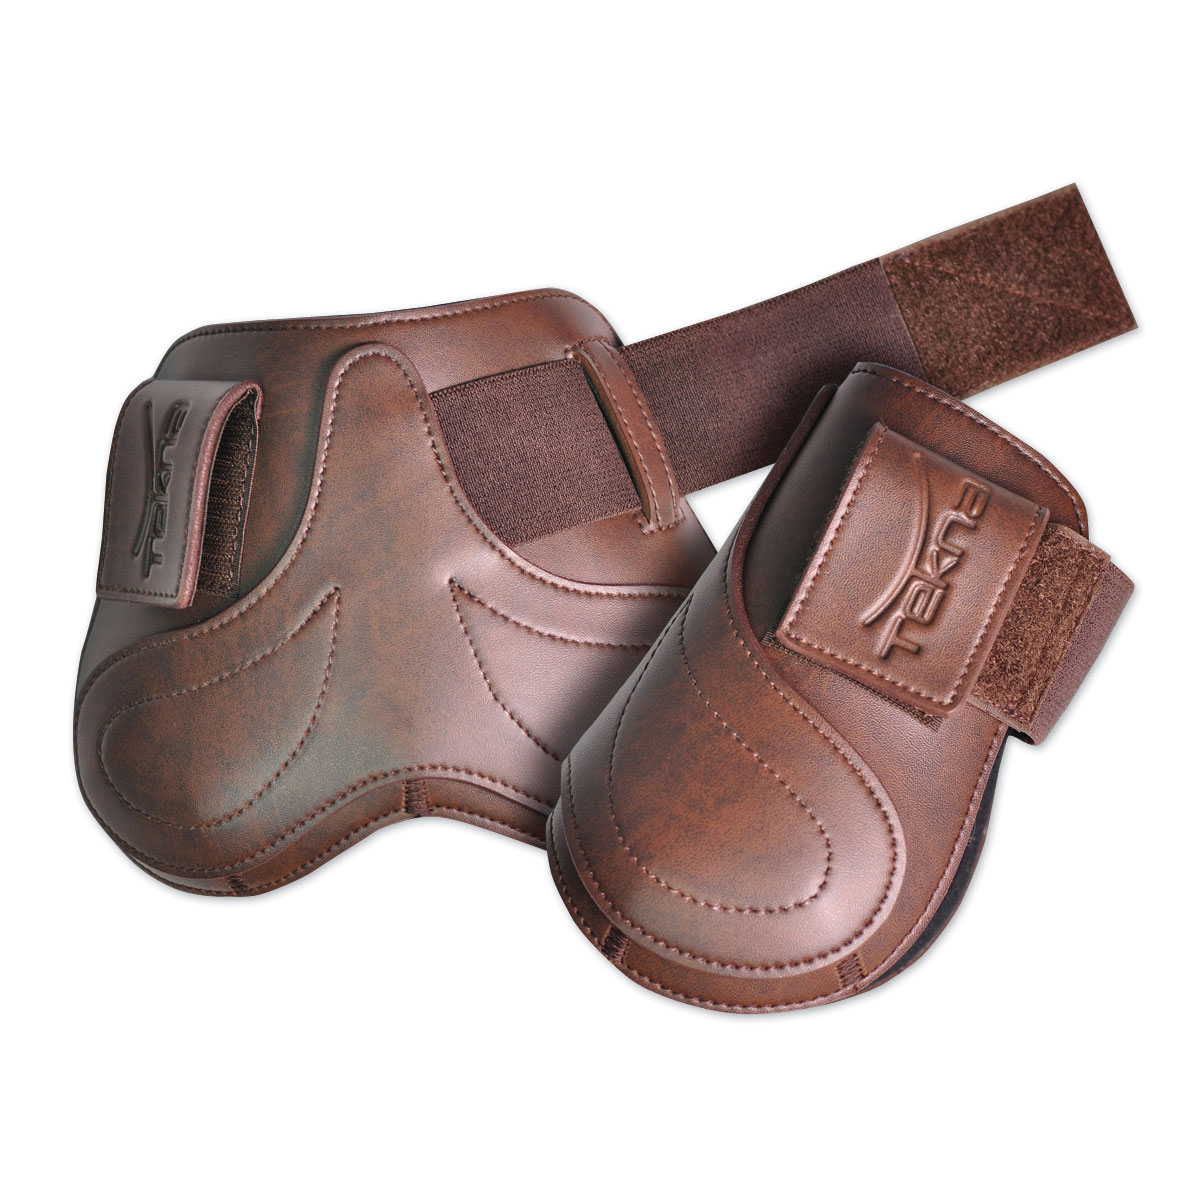 Tekna Fancy Stitched Hind Boots